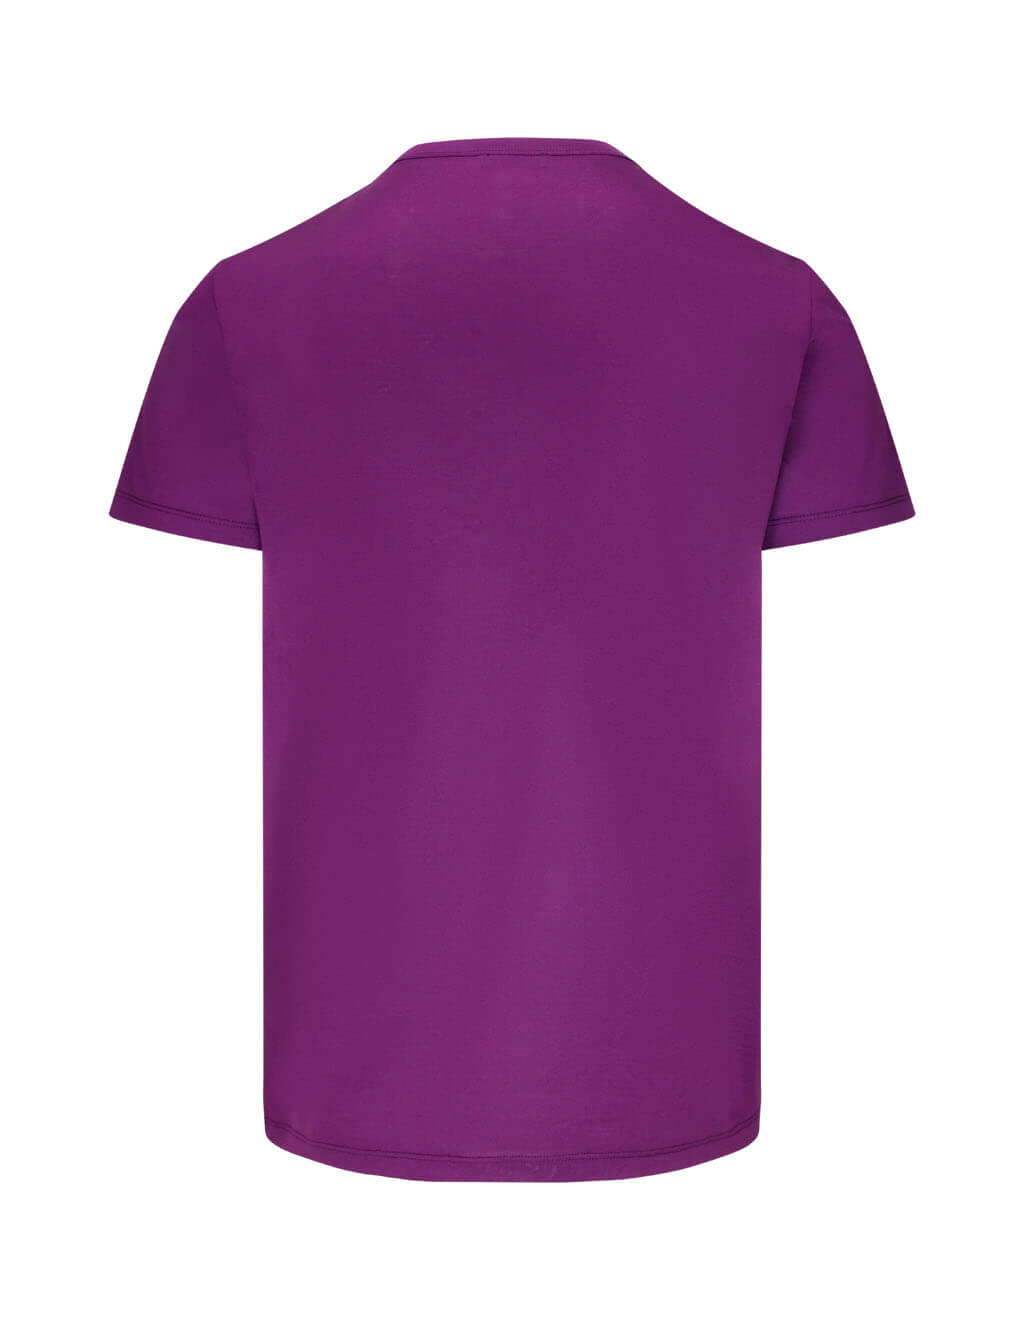 Moncler Men's Giulio Fashion Dark Purple Double Patch T-Shirt 0918C781008390Y670